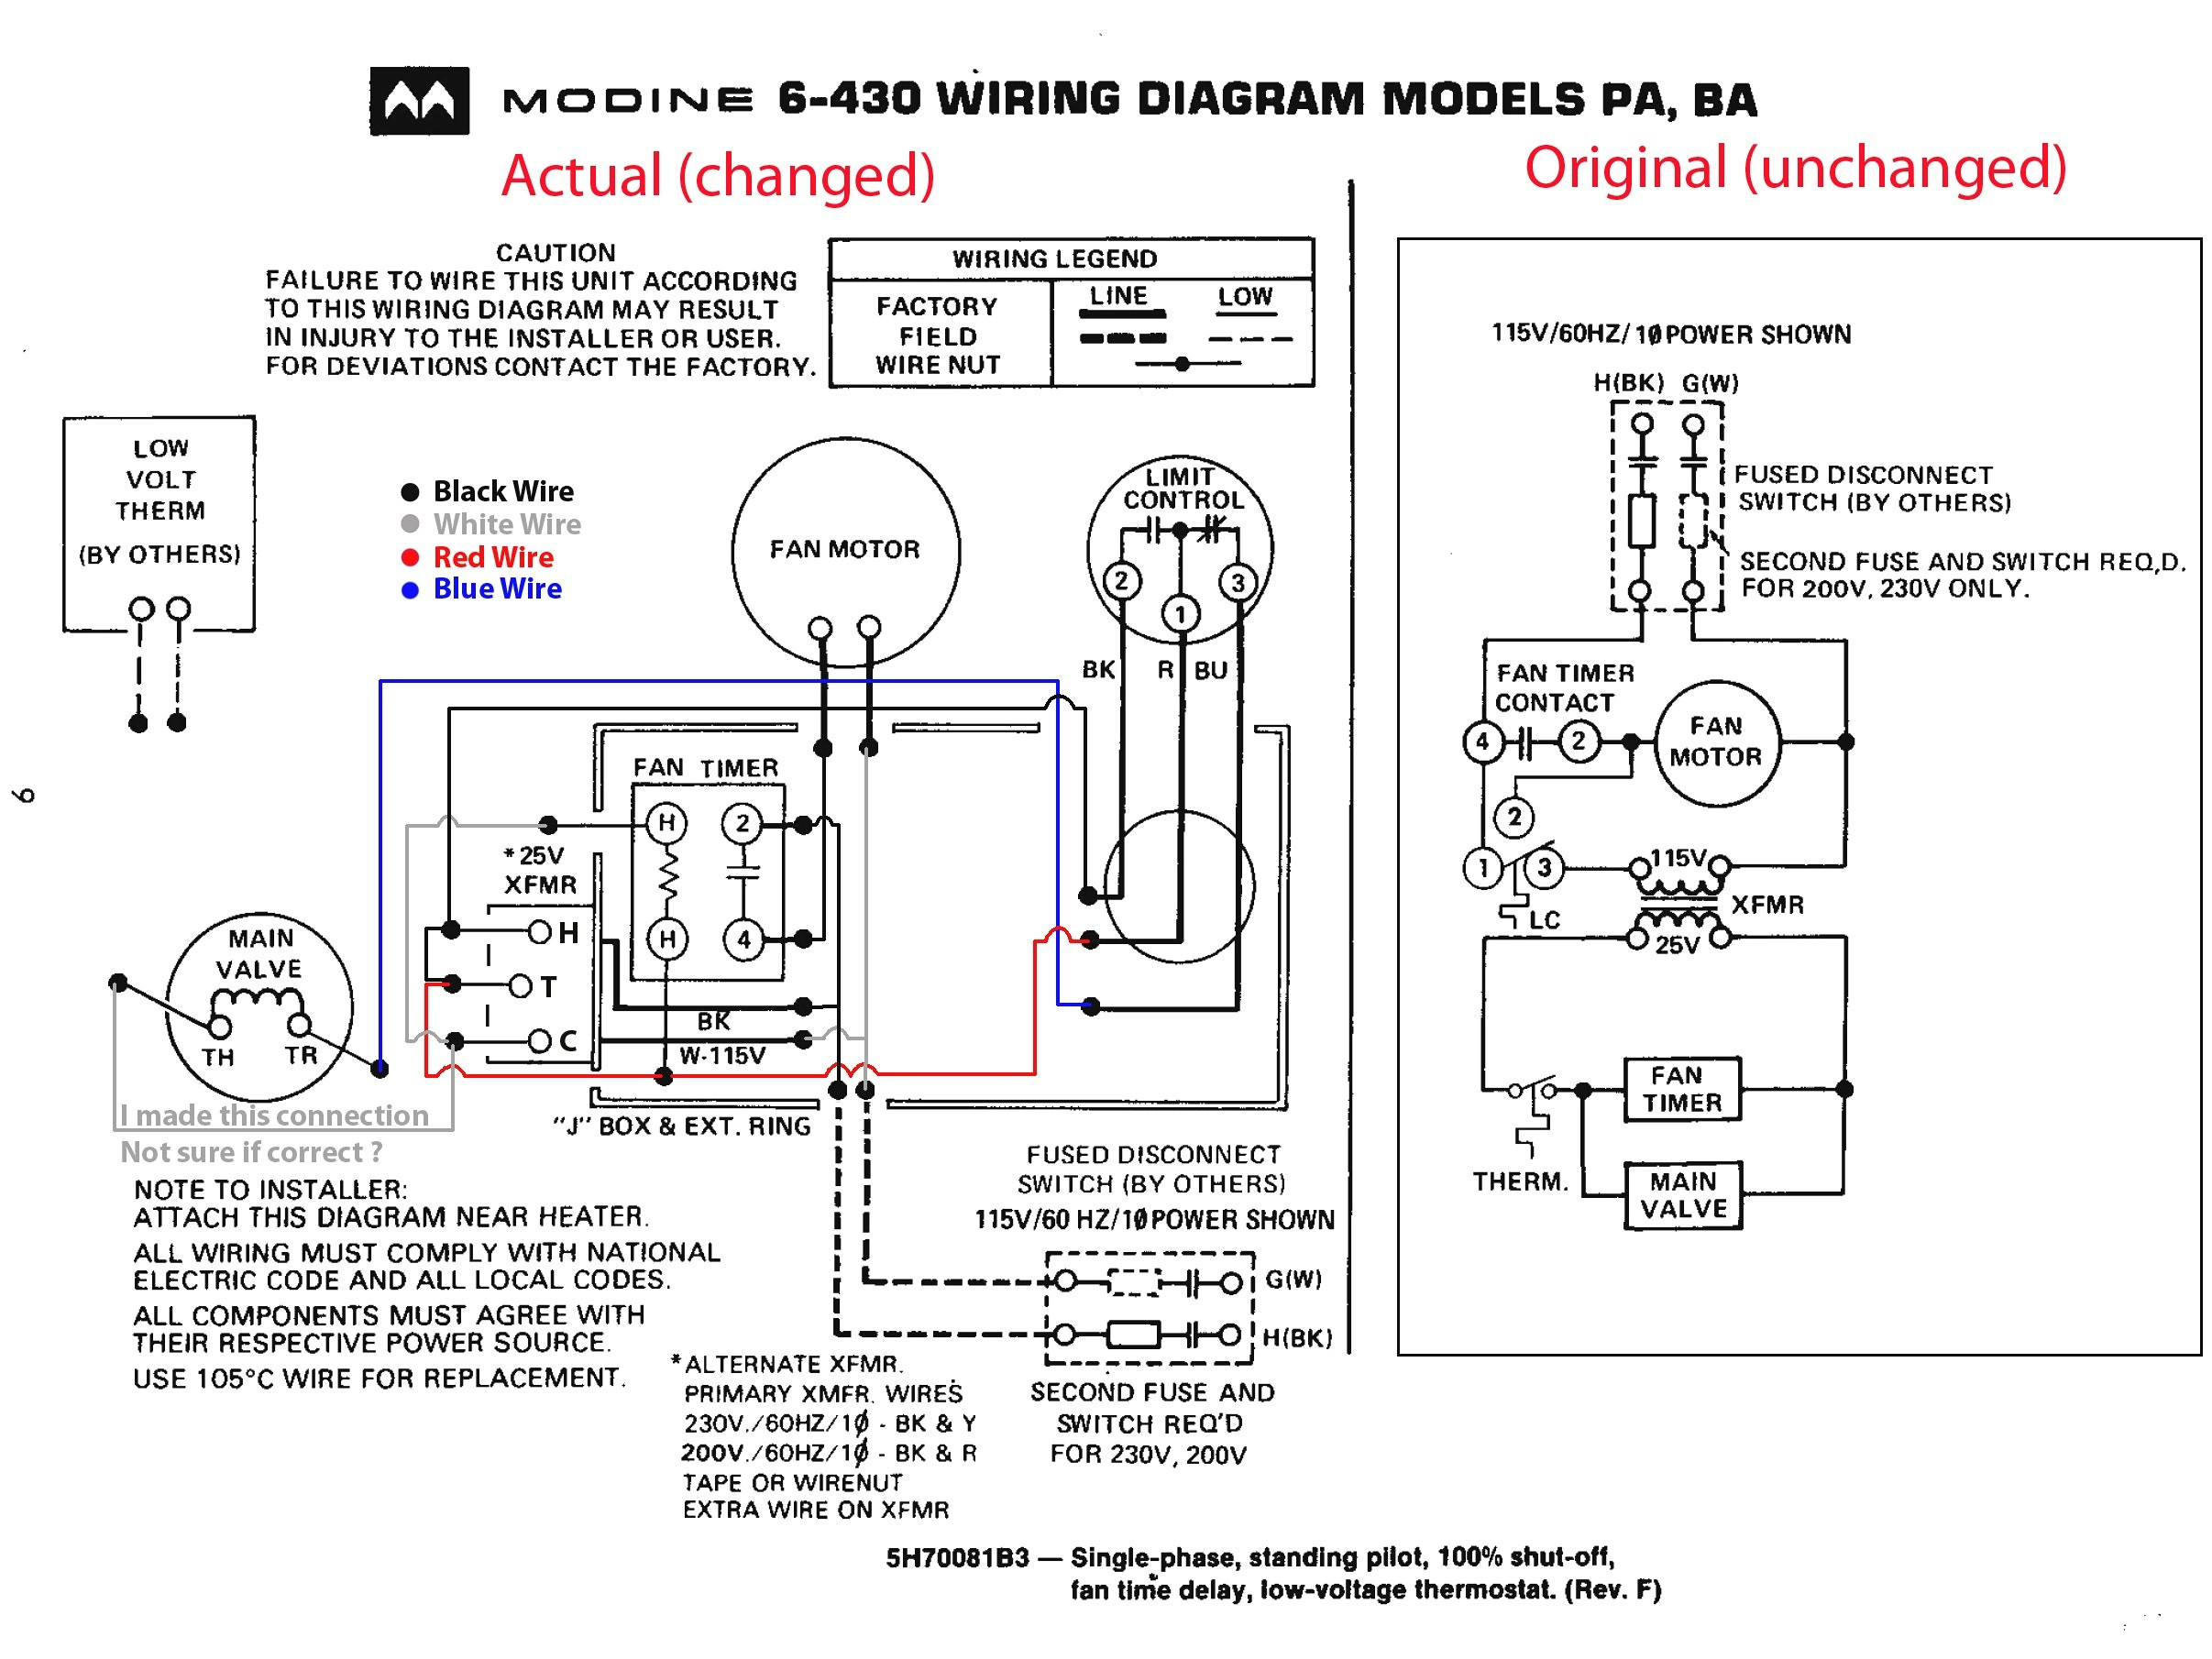 atwood water heater wiring diagram Collection-Wiring Diagram for Water Heater Refrence Wiring Diagram for Rv Furnace Fresh Wonderful atwood Furnace Wiring 14-b